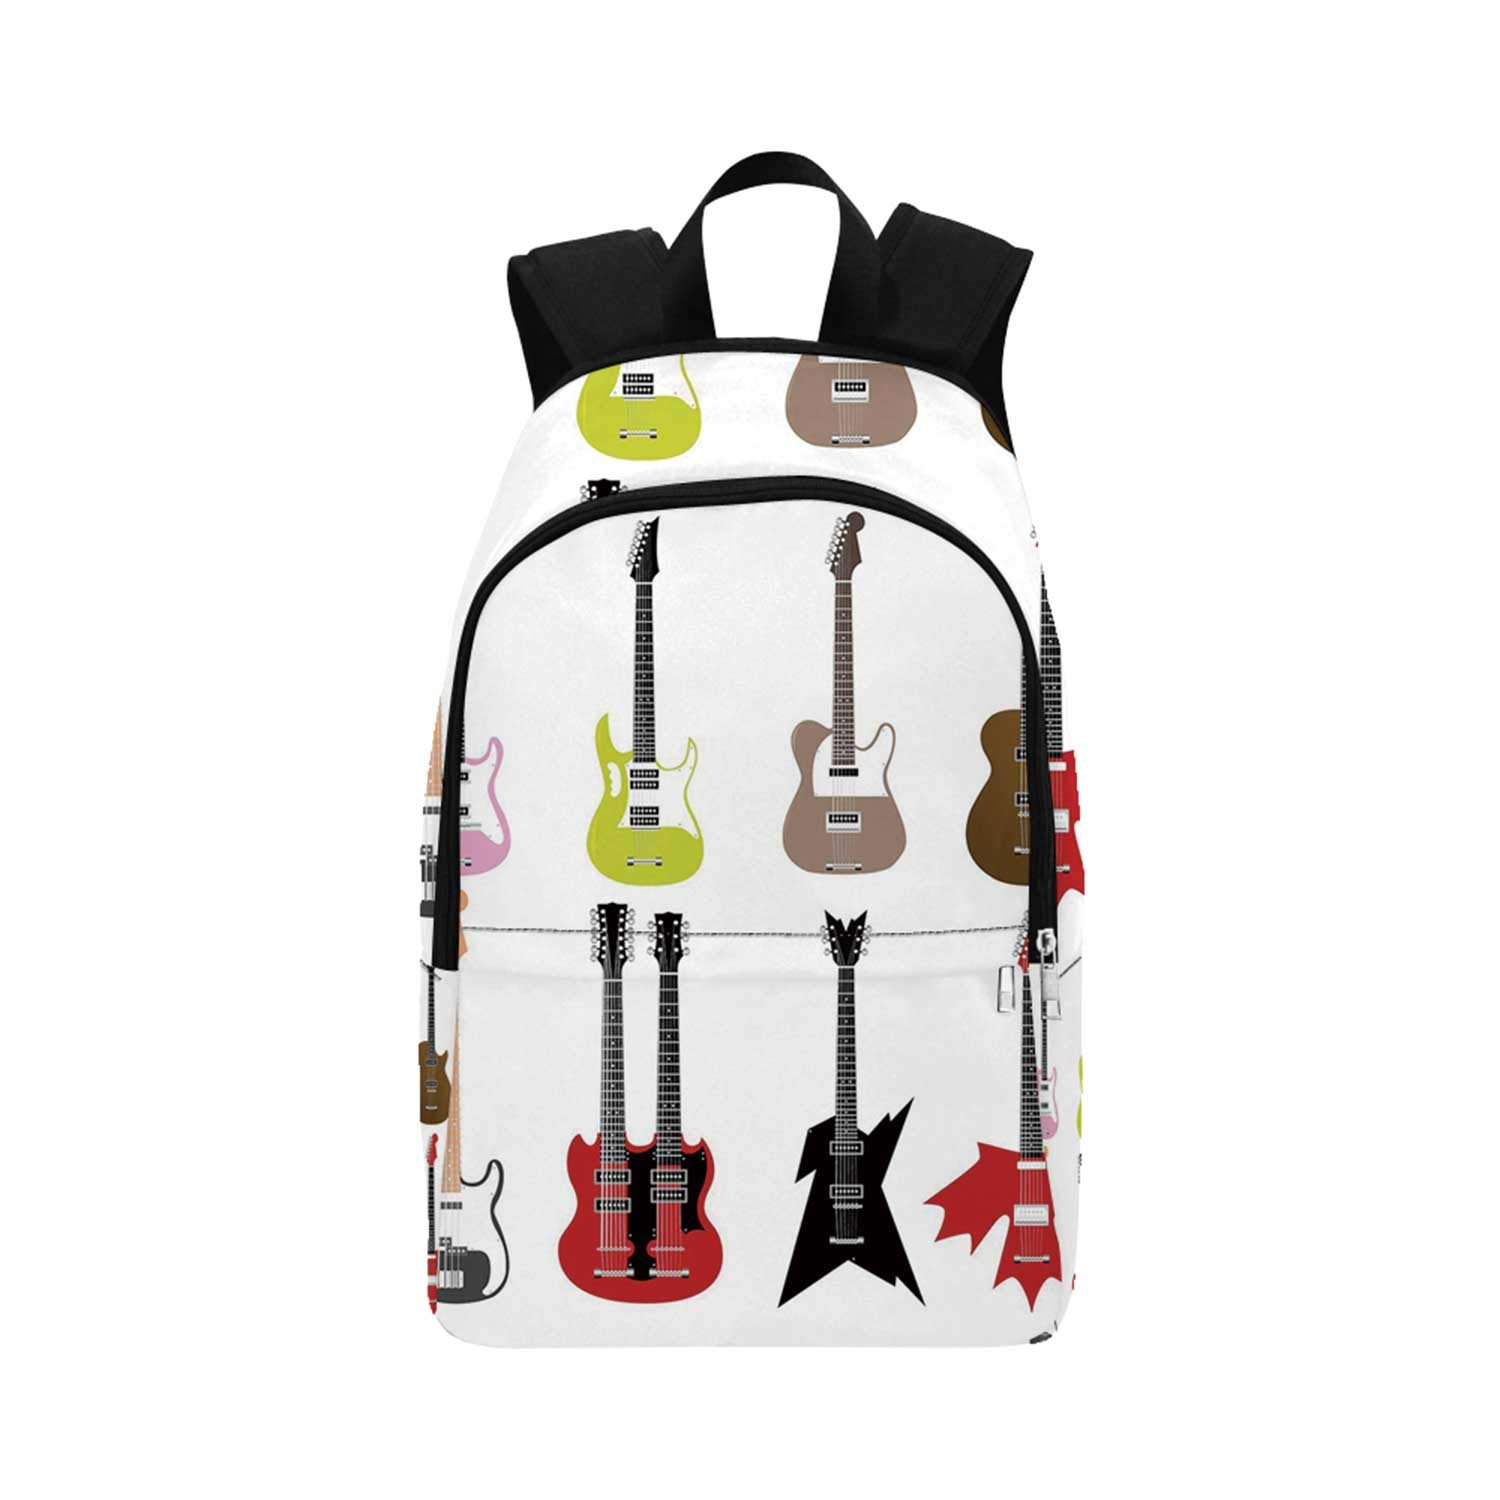 Guitar Durable Backpack,Graphic Collection of Guitars Colorful Stringed Instruments Fretboard Rock Blues Decorative for Adults,11.81''L x 5.51''W x 17.72''H by YOLIYANA